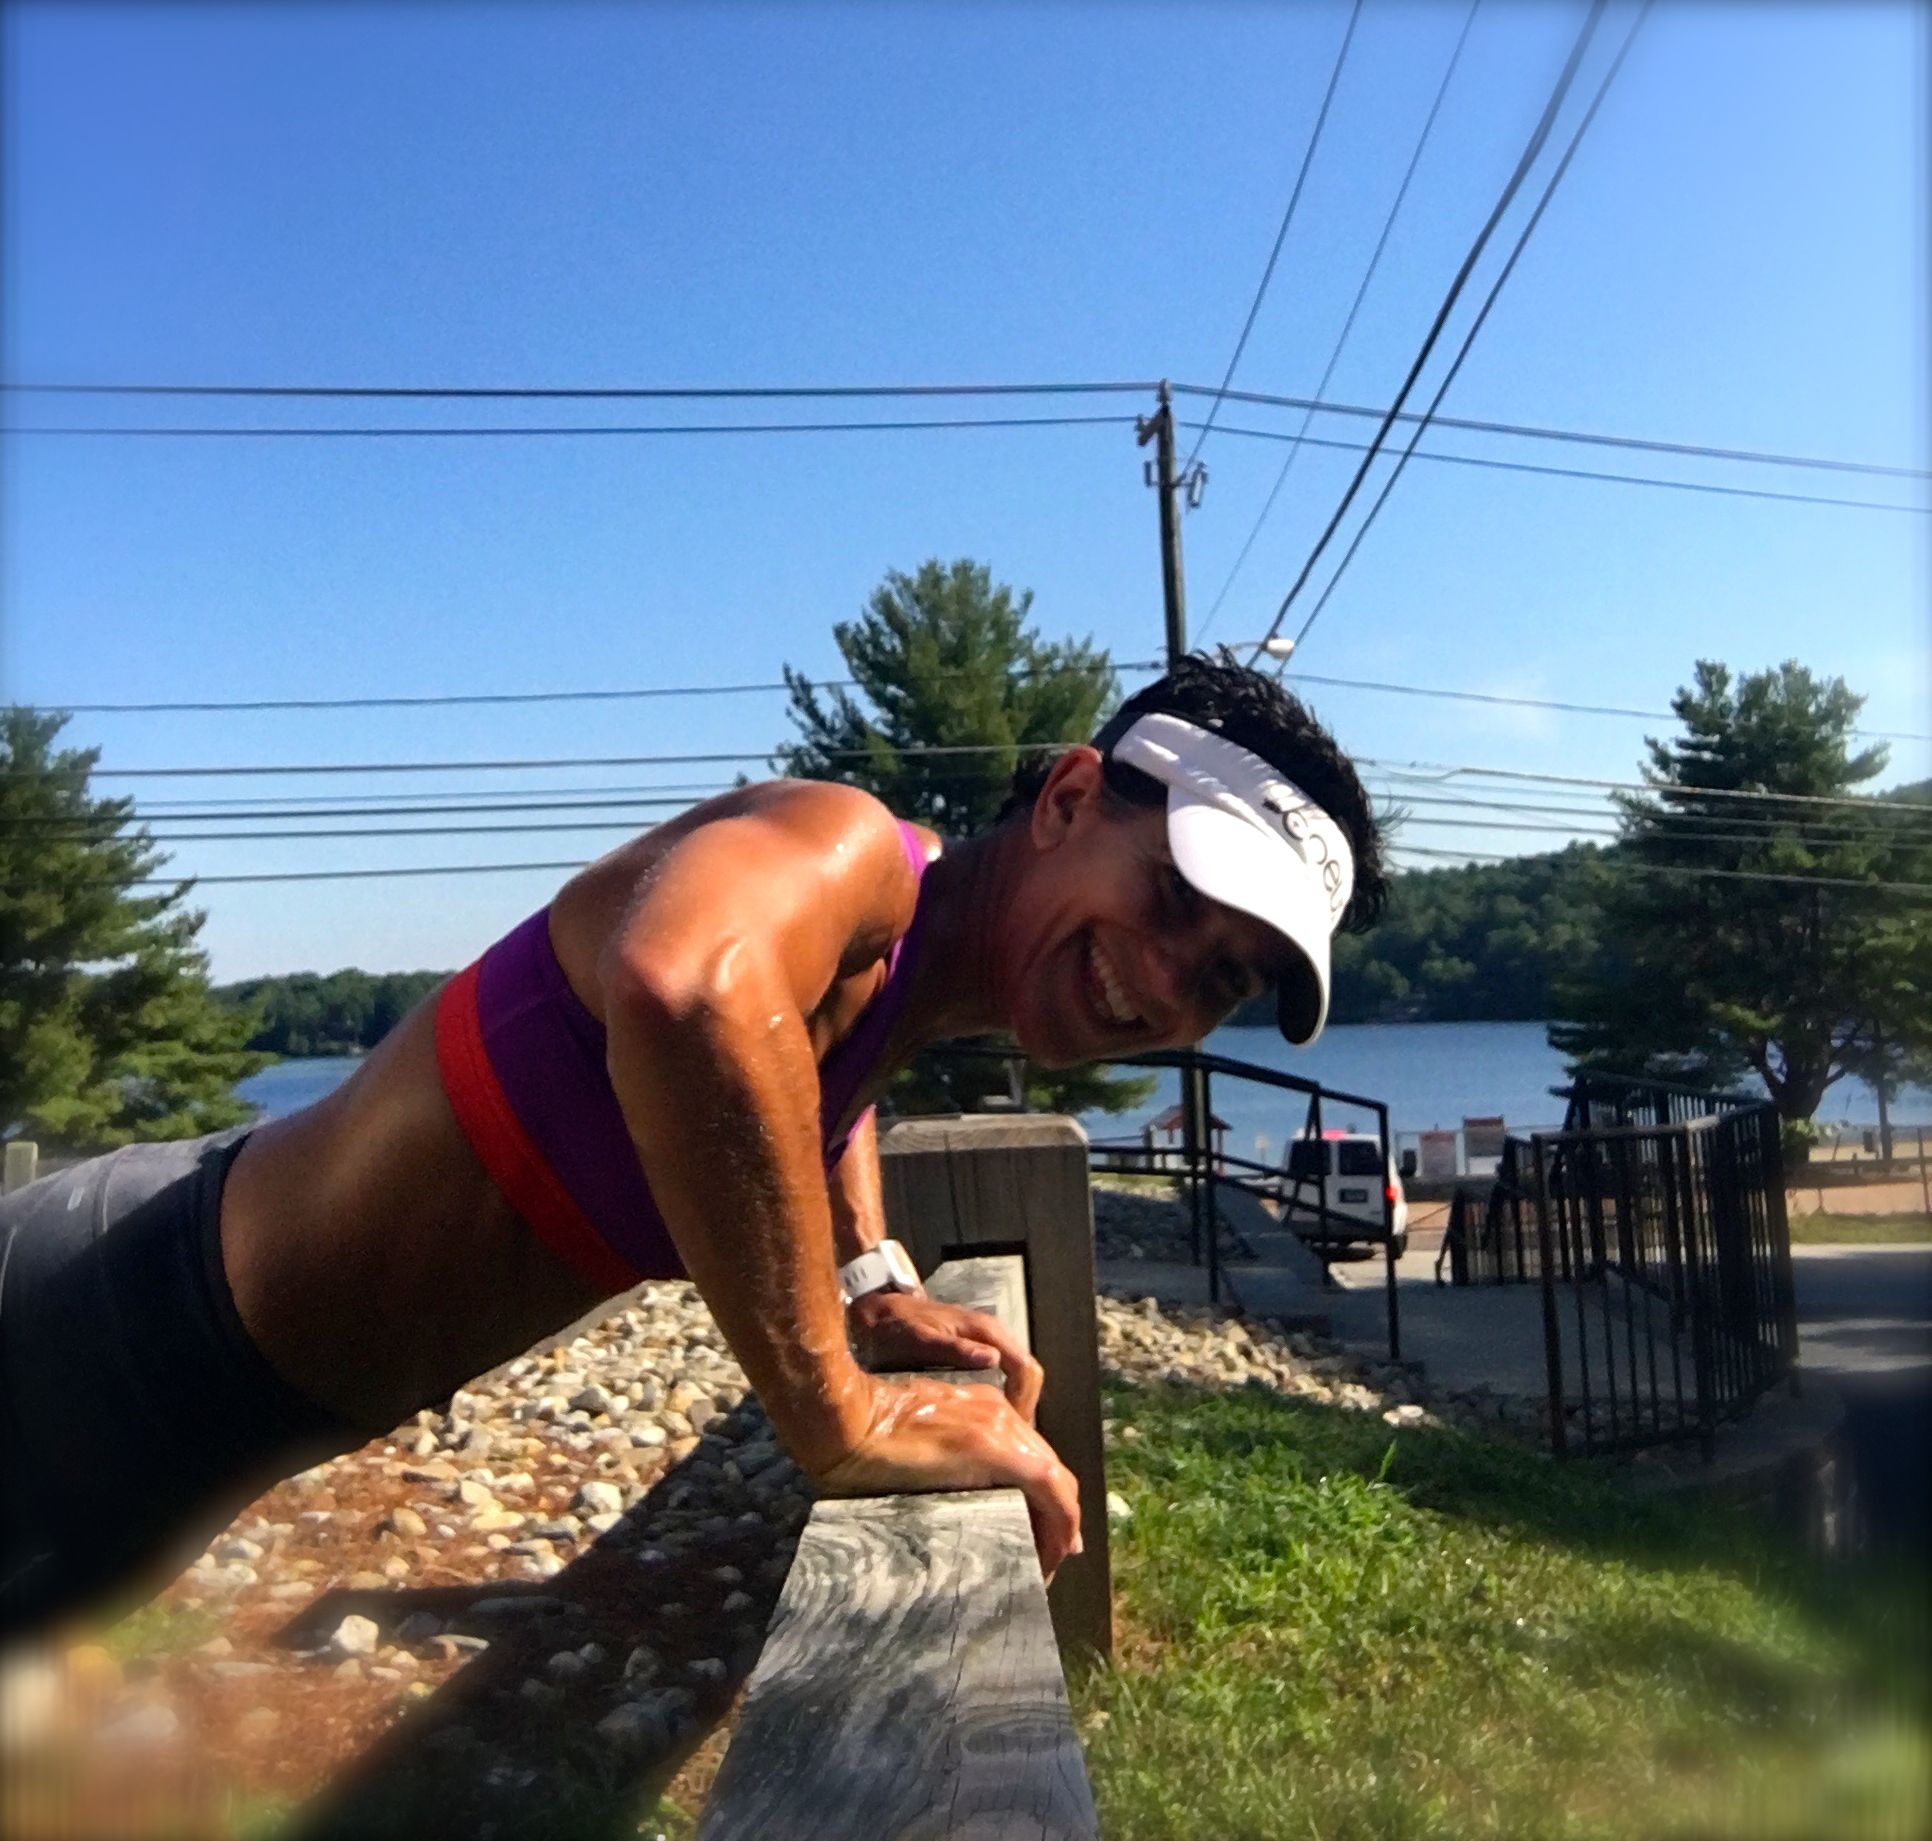 Just a quick core session in between my run and swim. It was a gorgeous day at the lake!